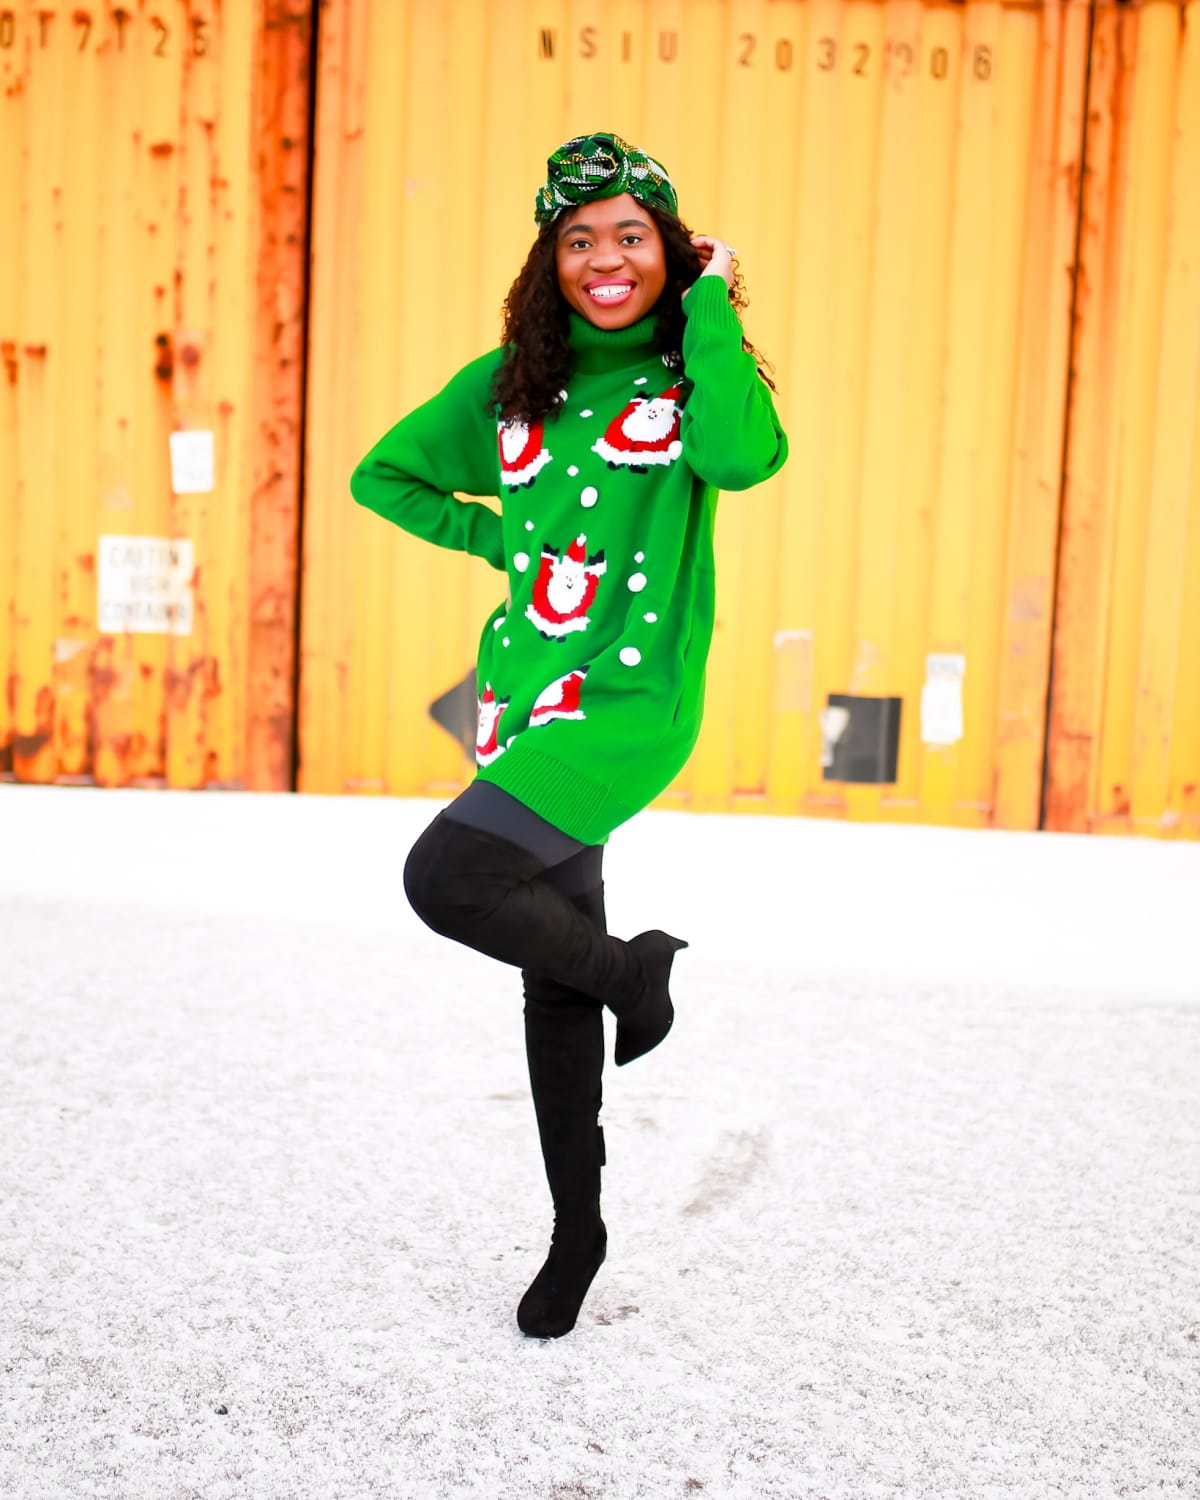 Not interested in a DIY ugly Christmas sweater? Here's a $35 Amazon Xmas sweater that's cute, cozy and warm. Here's why this comfy sweater is a hit this season. #uglychristmassweater #uglysweater